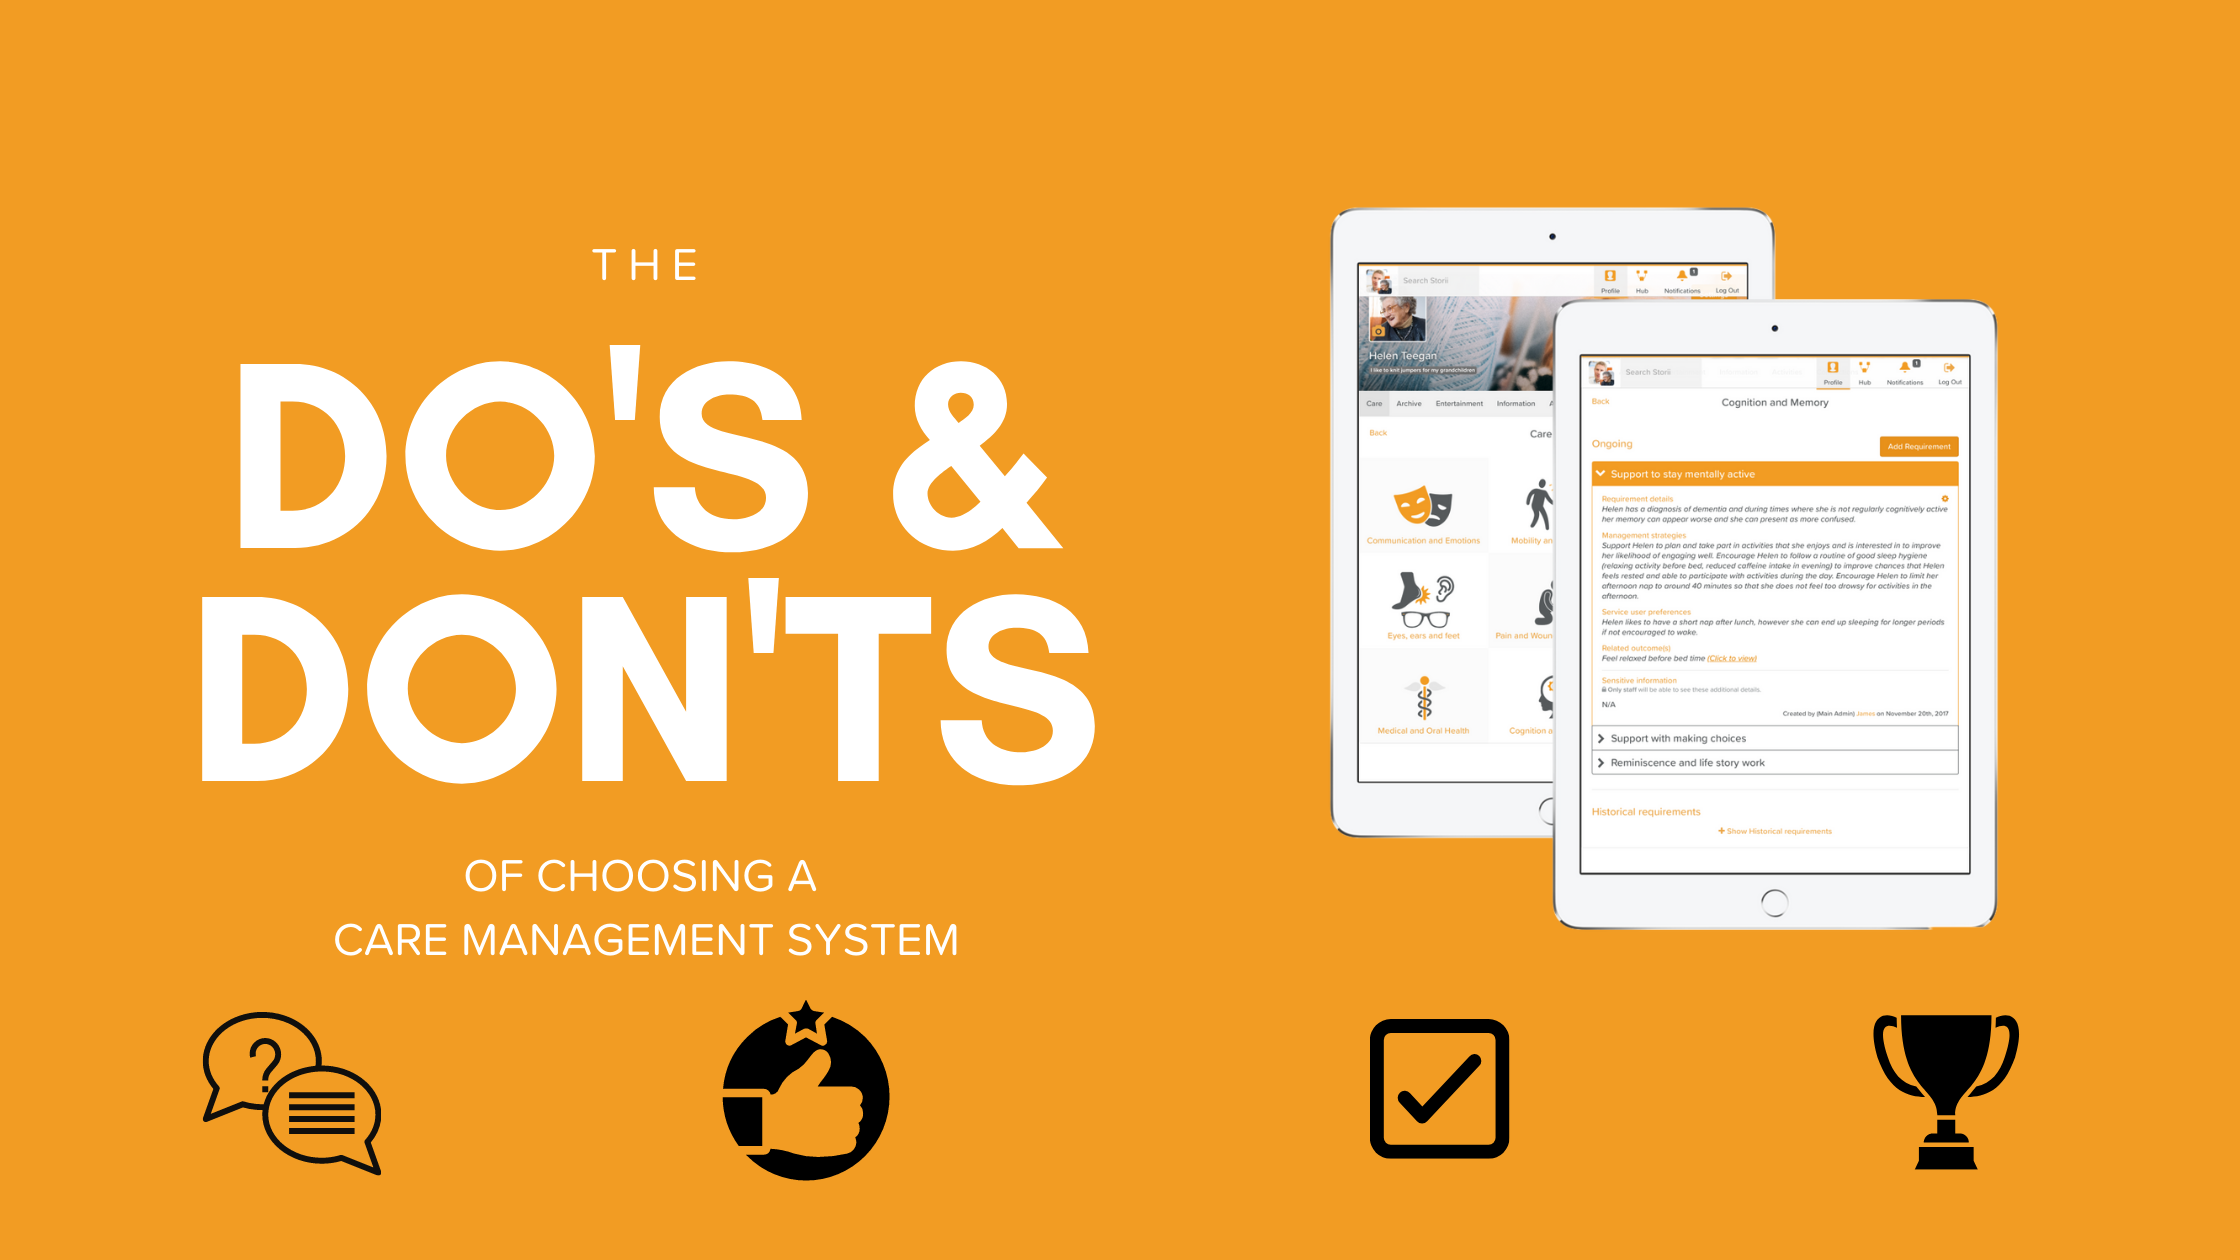 Do's & Don'ts of Choosing a Care Management System